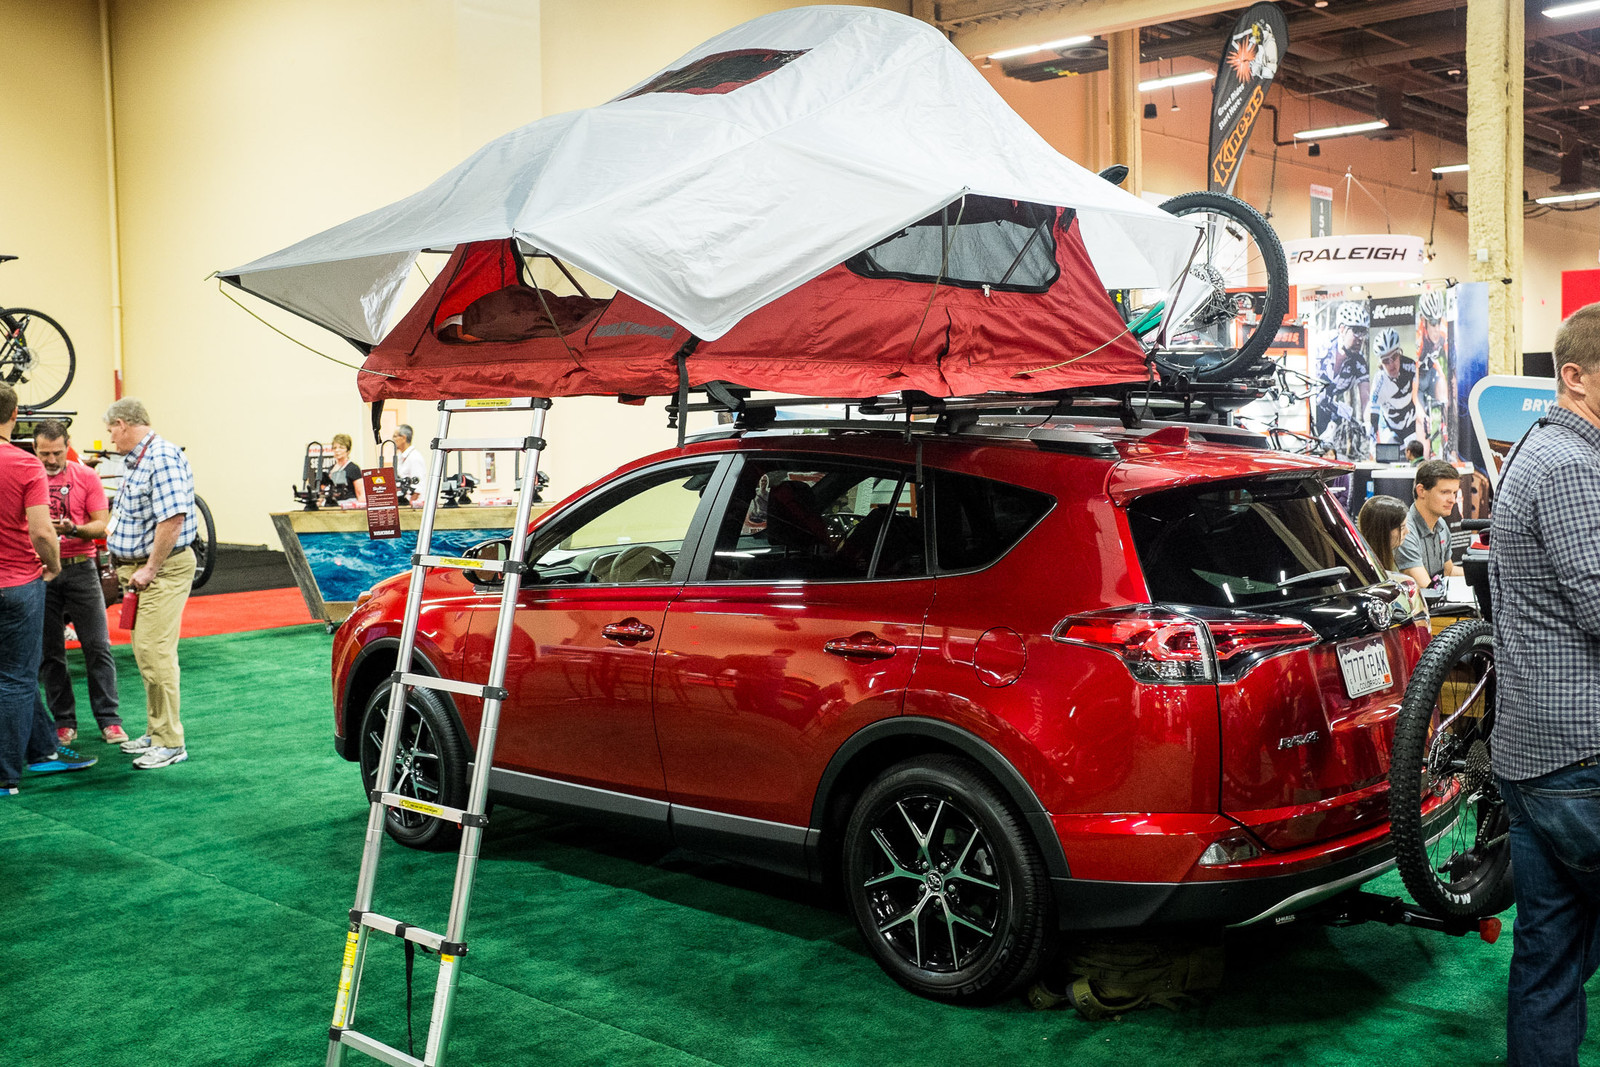 Yakima SkyRise Roof Mounted Tent - INTERBIKE - 2017 Mountain Bike Components - Mountain Biking Pictures - Vital MTB